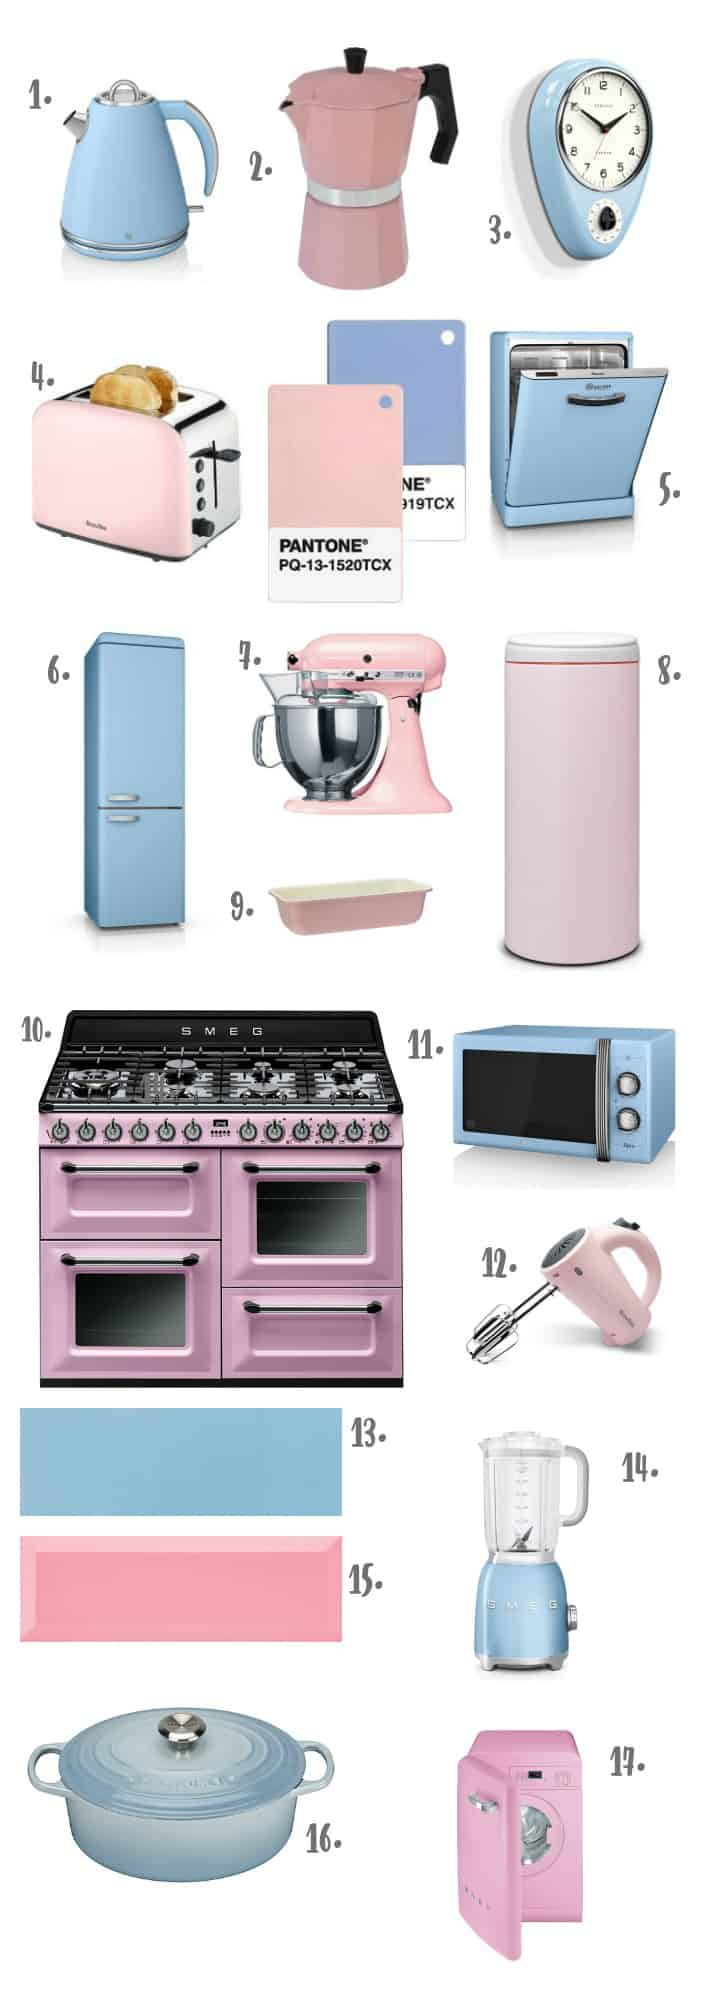 Pantone Colour of the Year 2016 Rose Quartz & Serenity - Products for the Kitchen